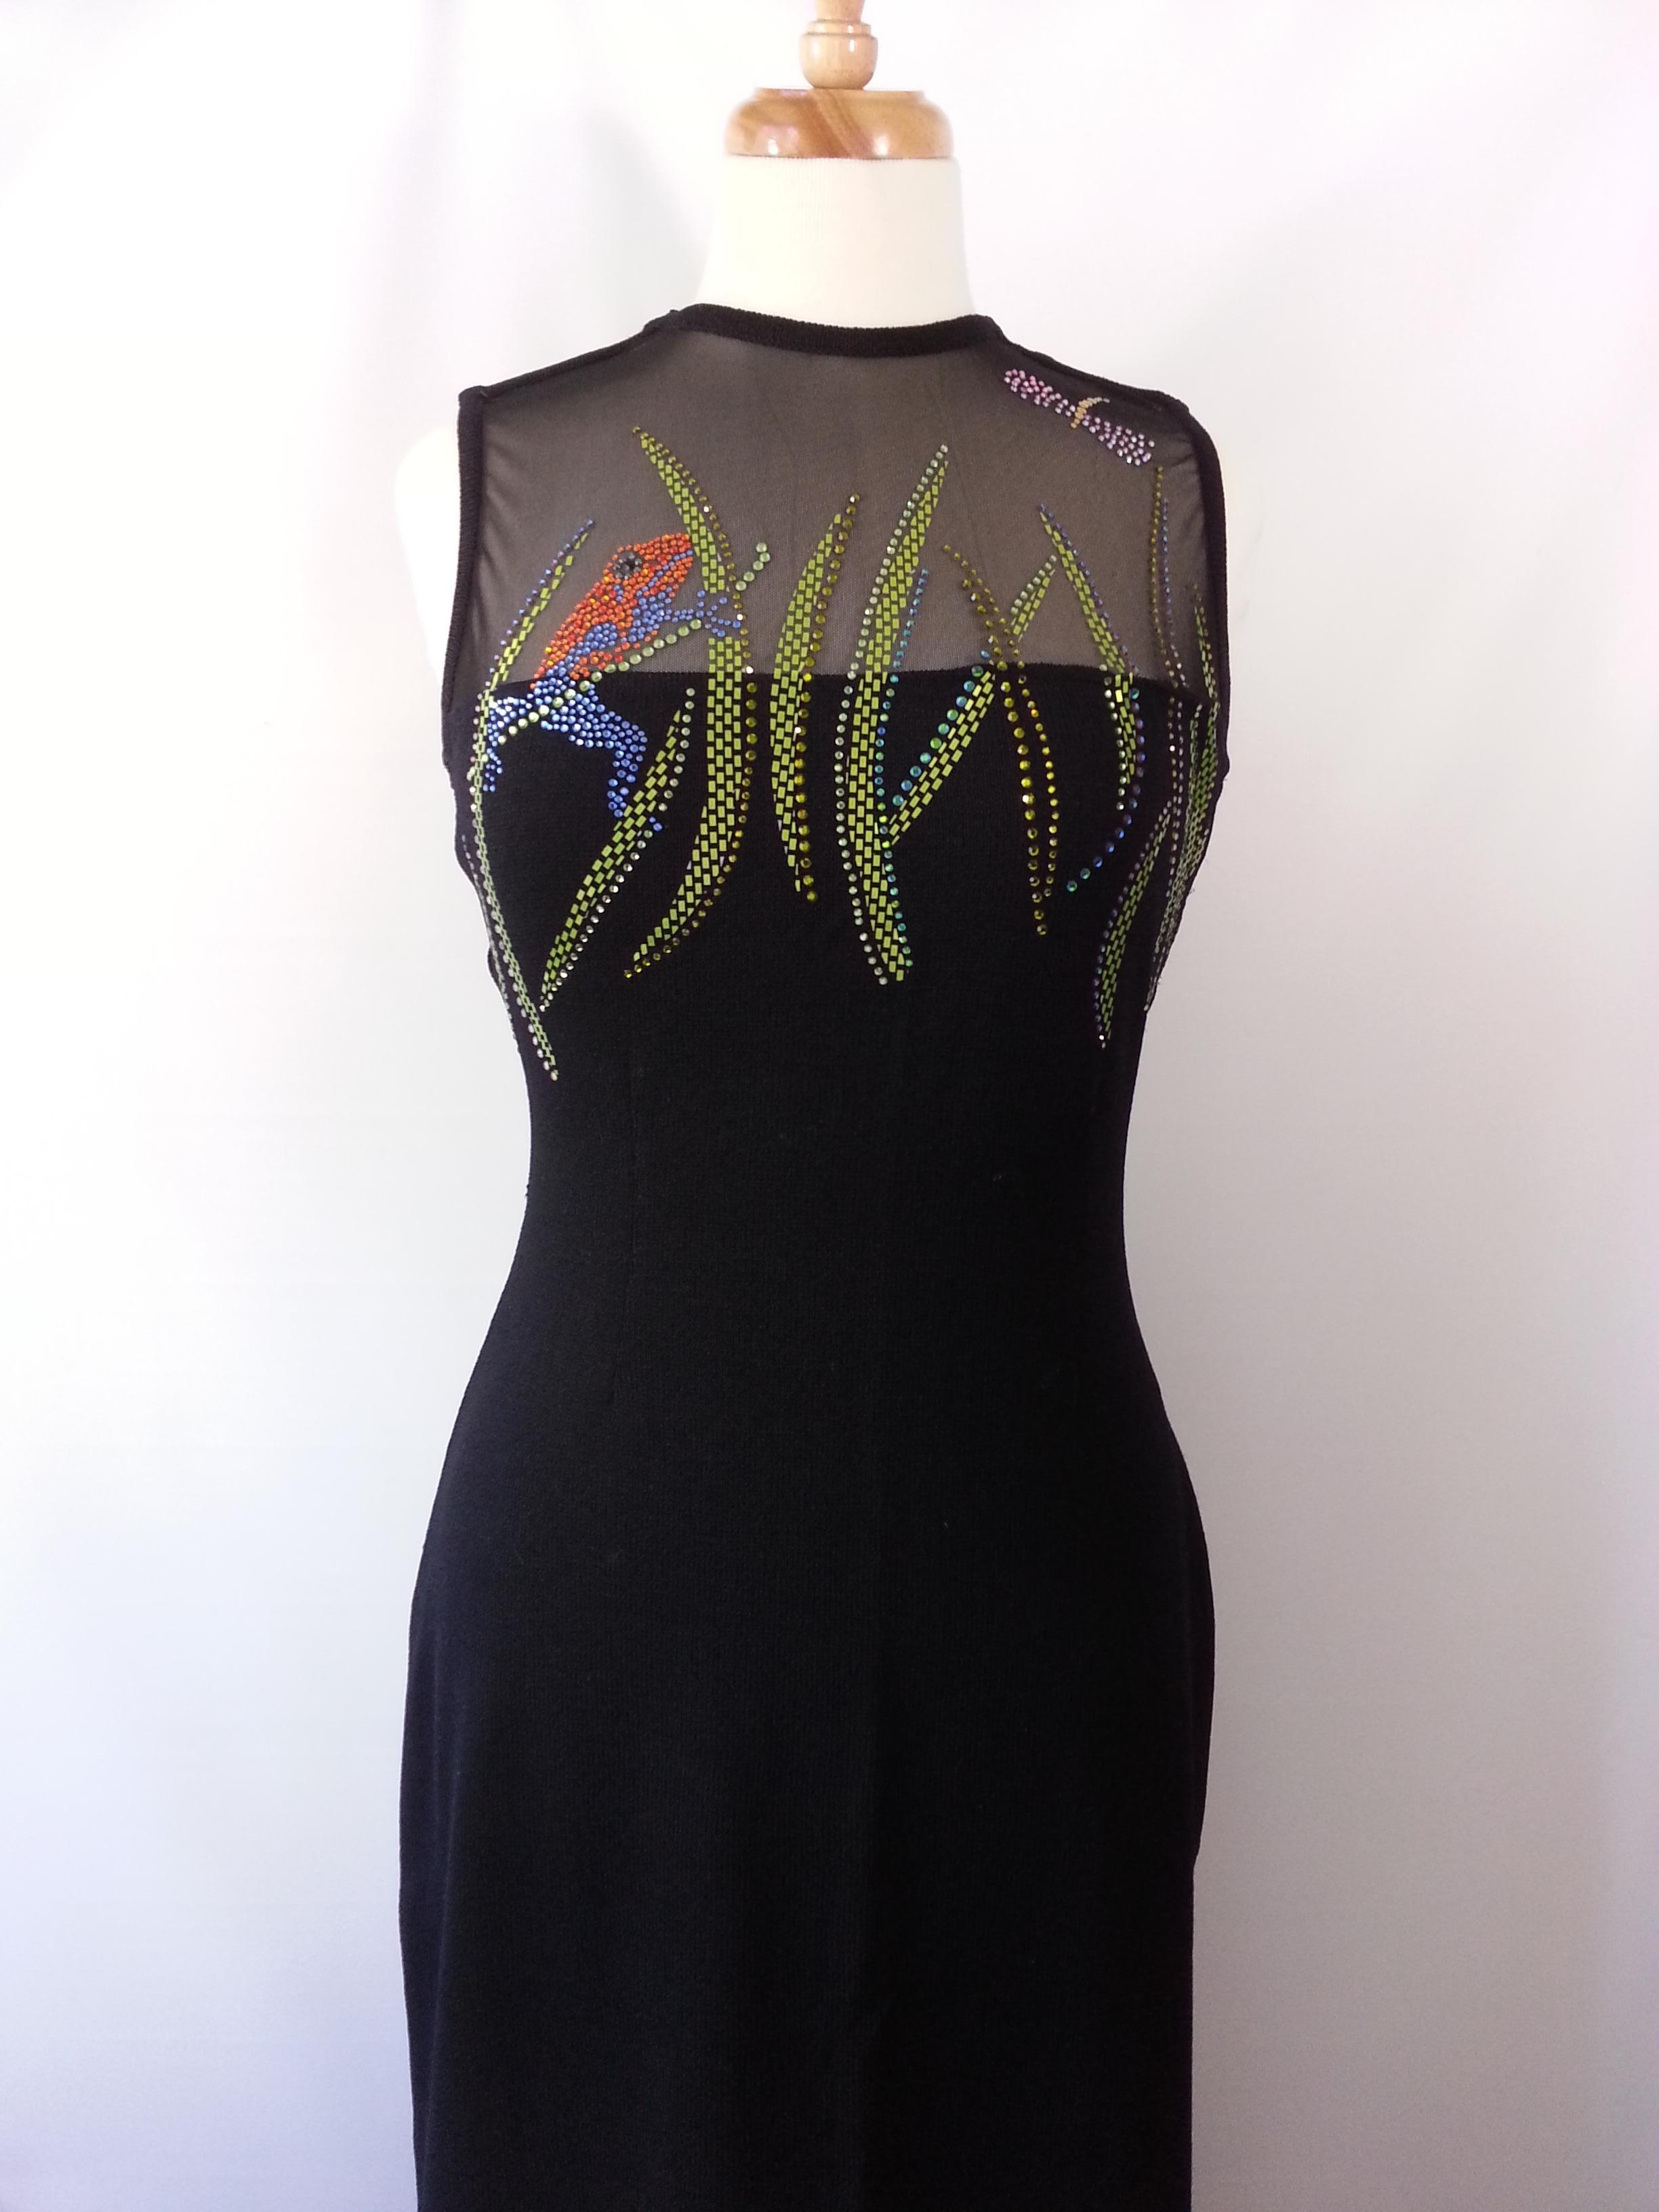 St. John Black With Multi-Color Pailettes Sale!!! Couture Frog ...